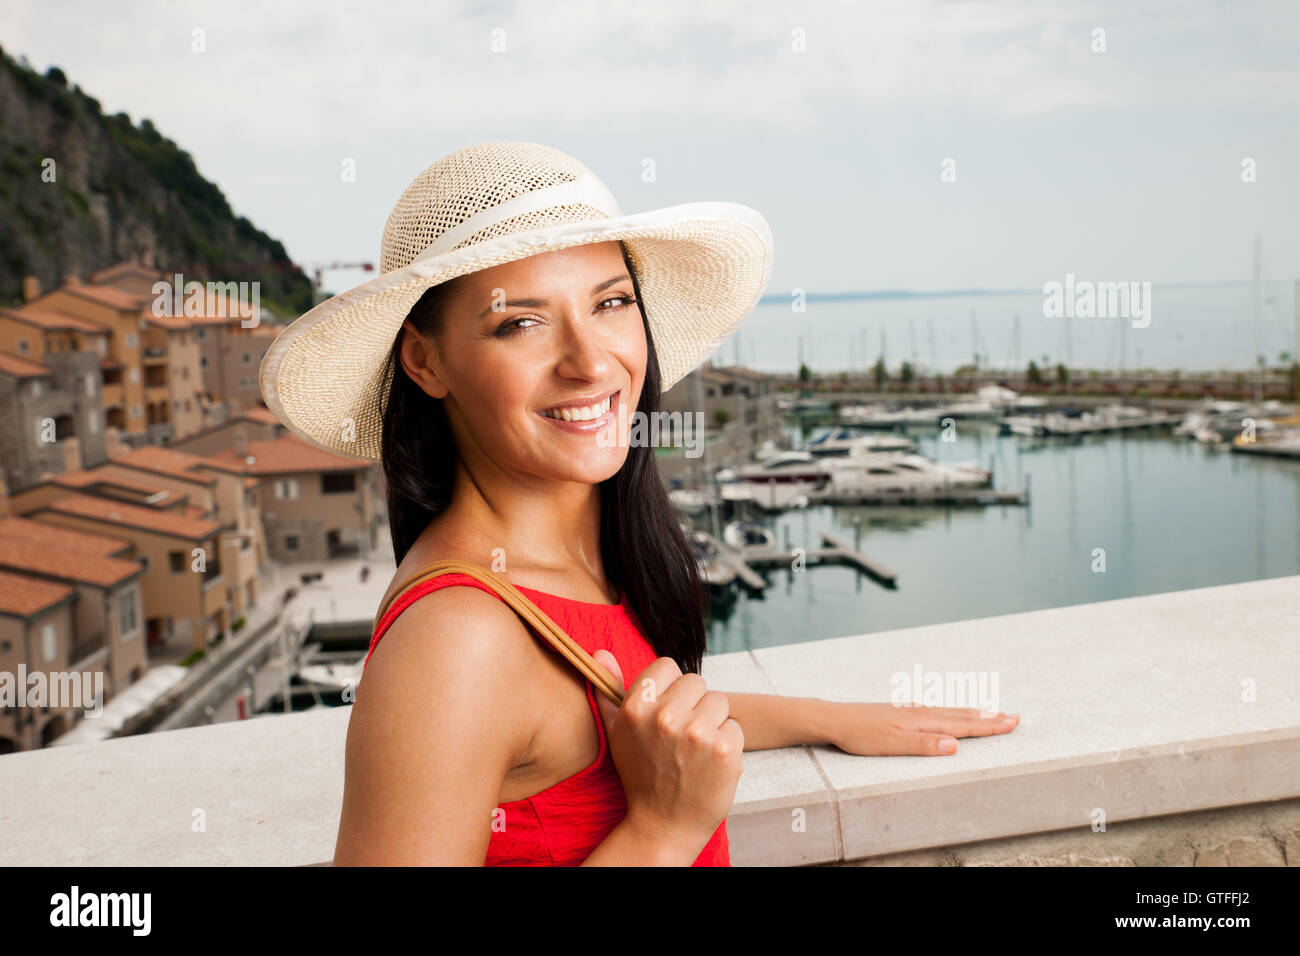 Hot Un Stock >> Woman Walks A City On The Beach On Hot Summer Day Un Beautiful Red